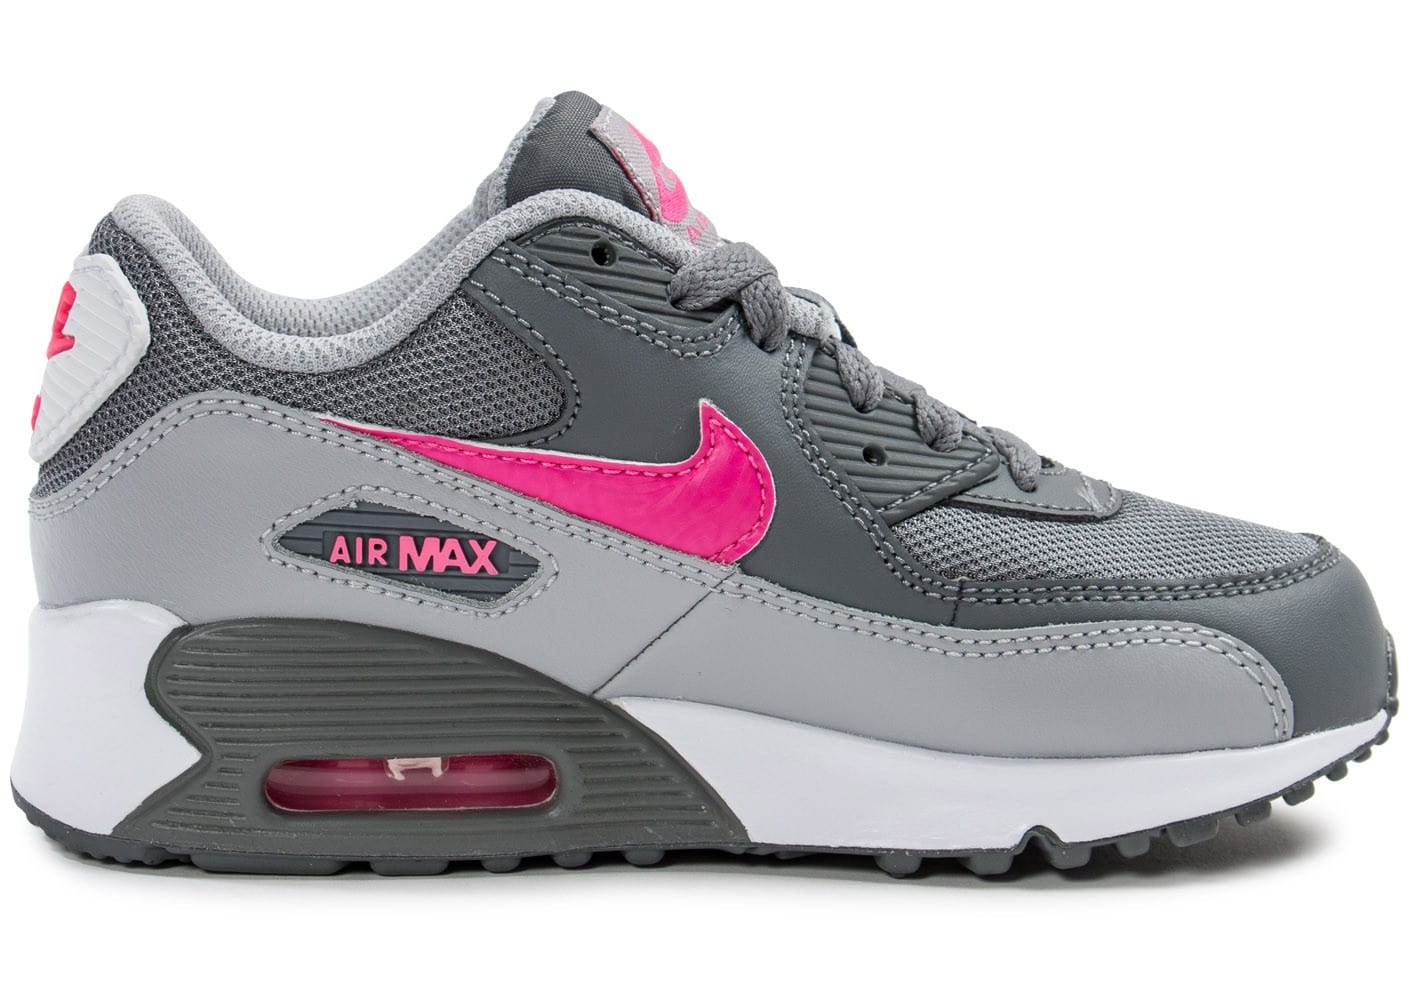 nike air max 90 enfant grise et rose chaussures chaussures chausport. Black Bedroom Furniture Sets. Home Design Ideas